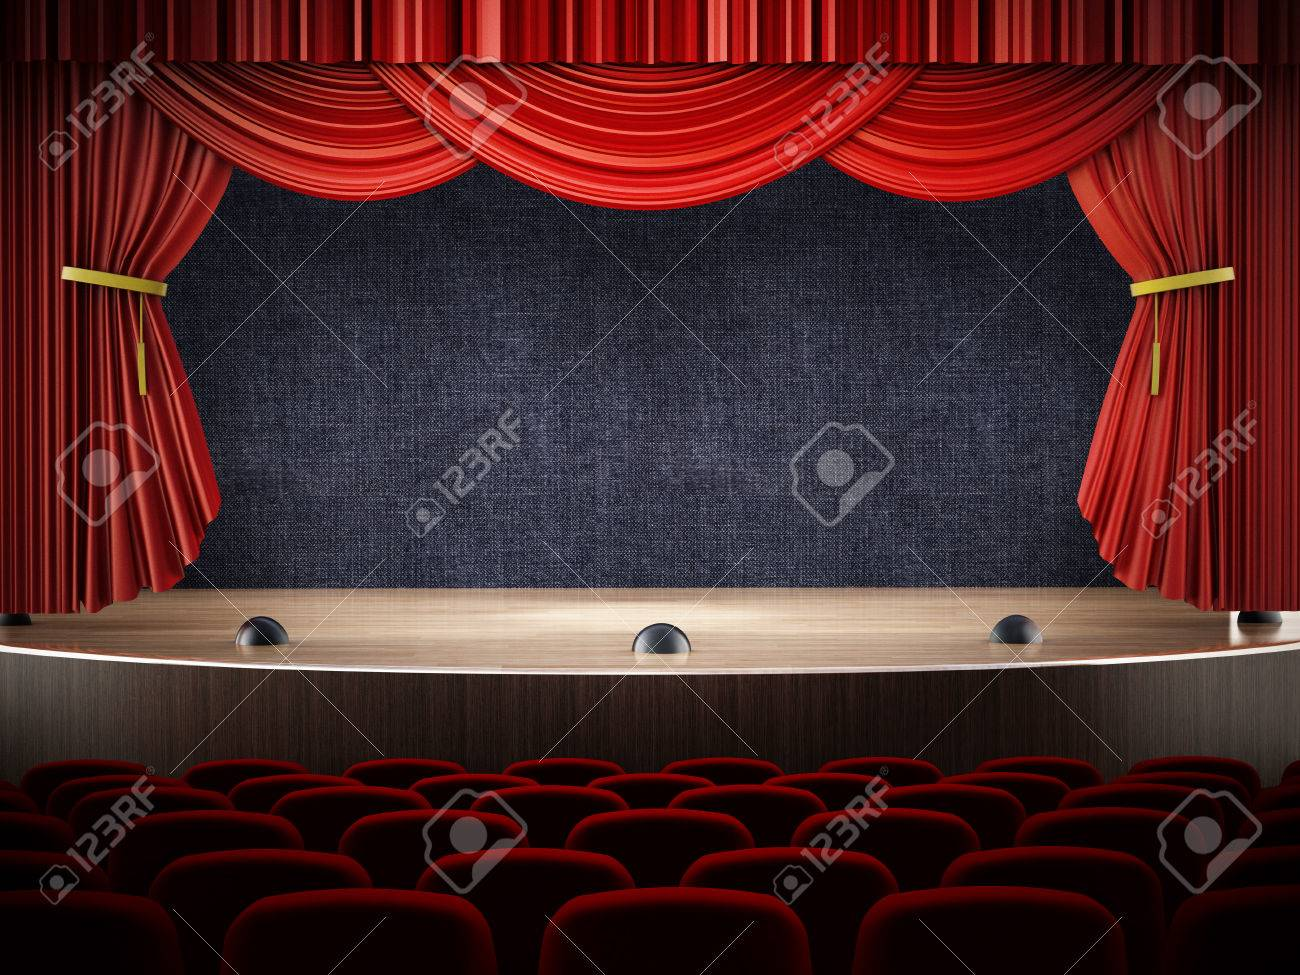 Movie theater with open curtains. Stock Photo - 34891770